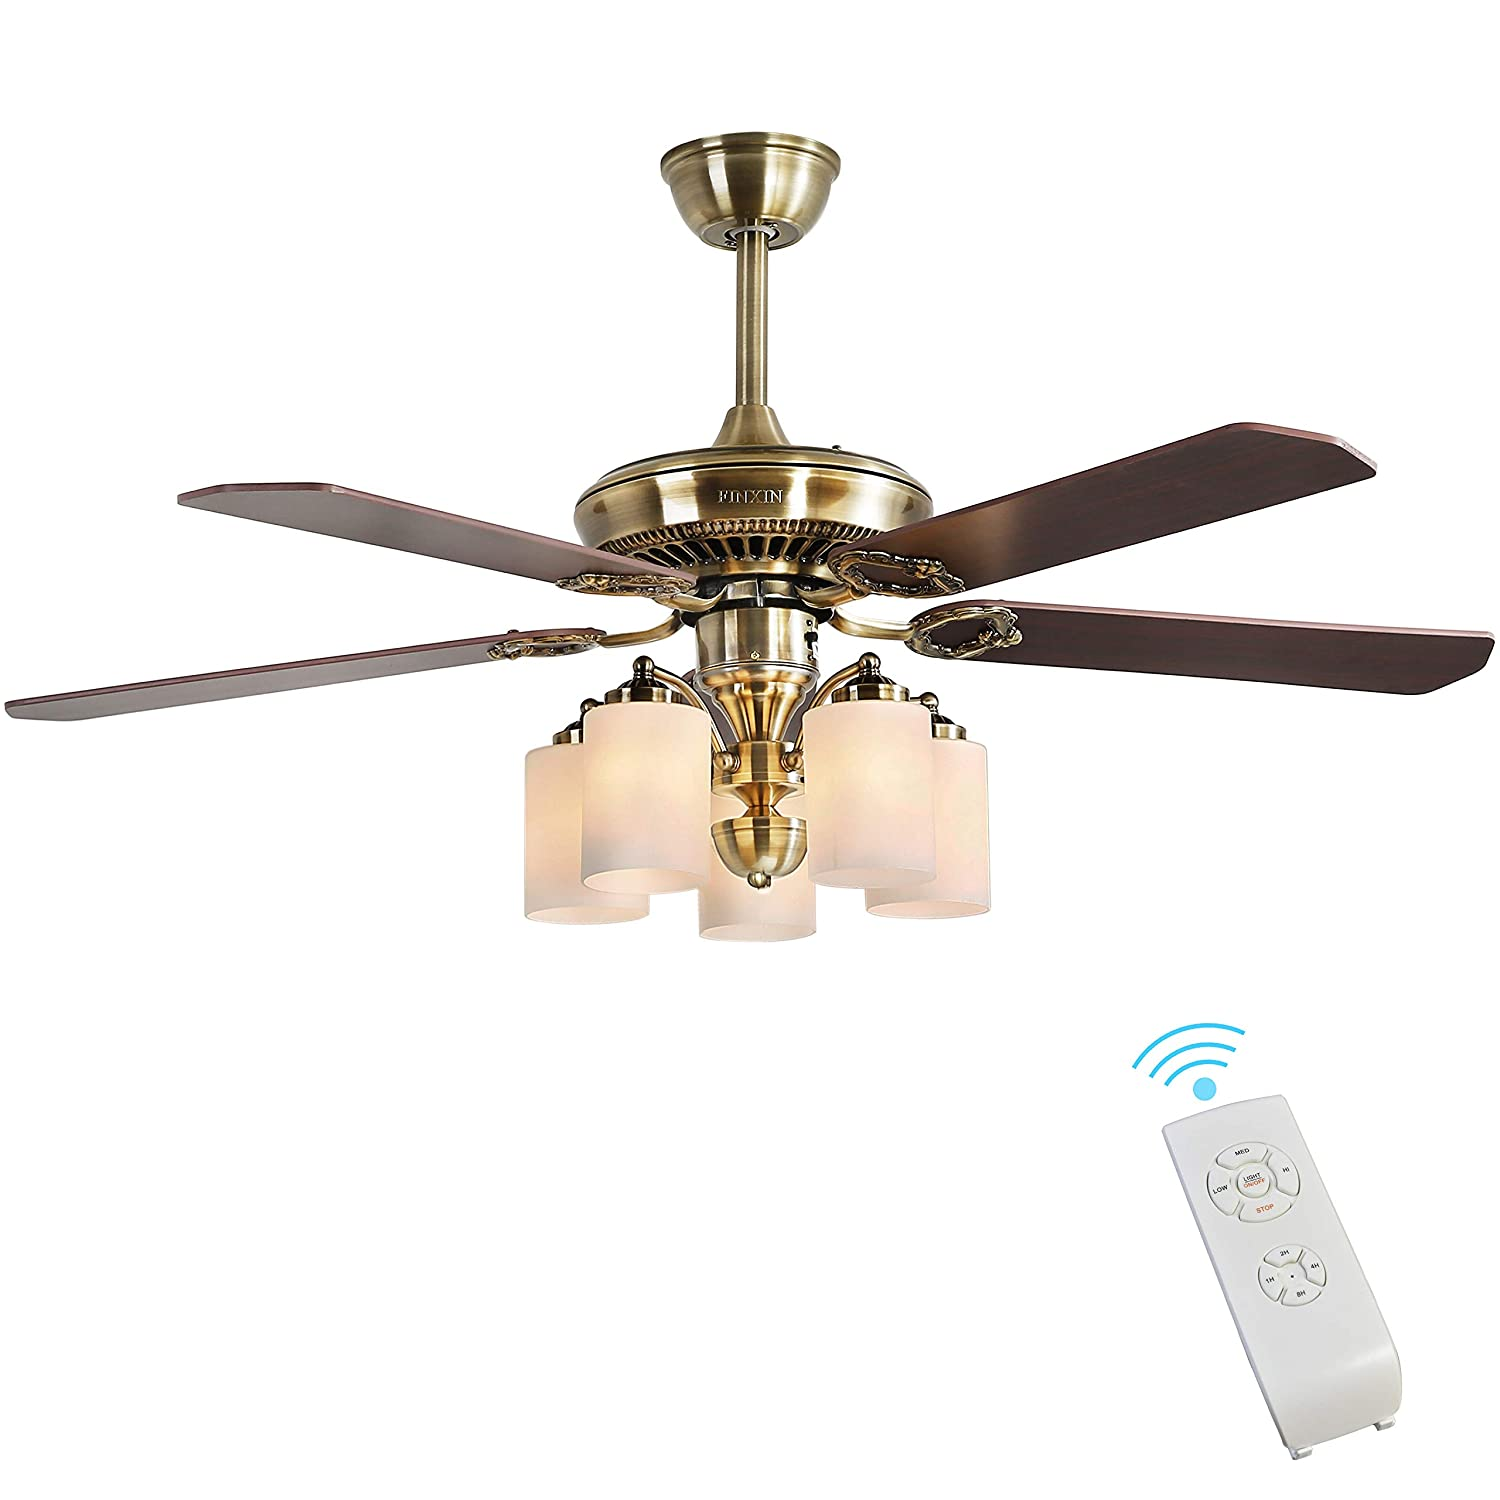 Indoor ceiling fan light fixtures finxin fxcf07 2018 new design vintage new bronze remote led 52 ceiling fans for bedroomliving roomdining room